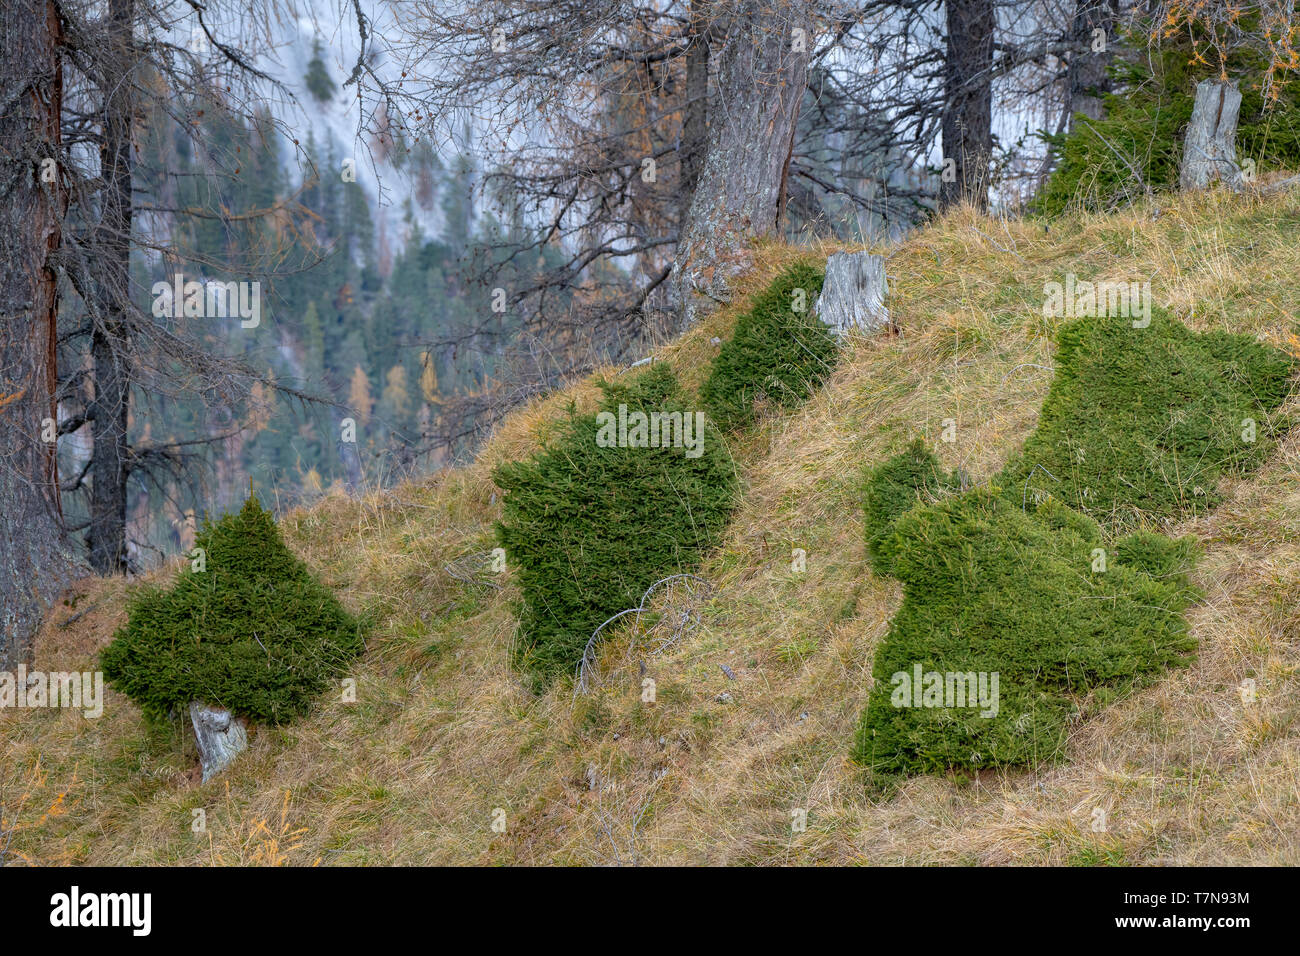 European Red Deer (Cervus elaphus): bite marks on young spruces in the mountain forest. Tyrol, Austria - Stock Image